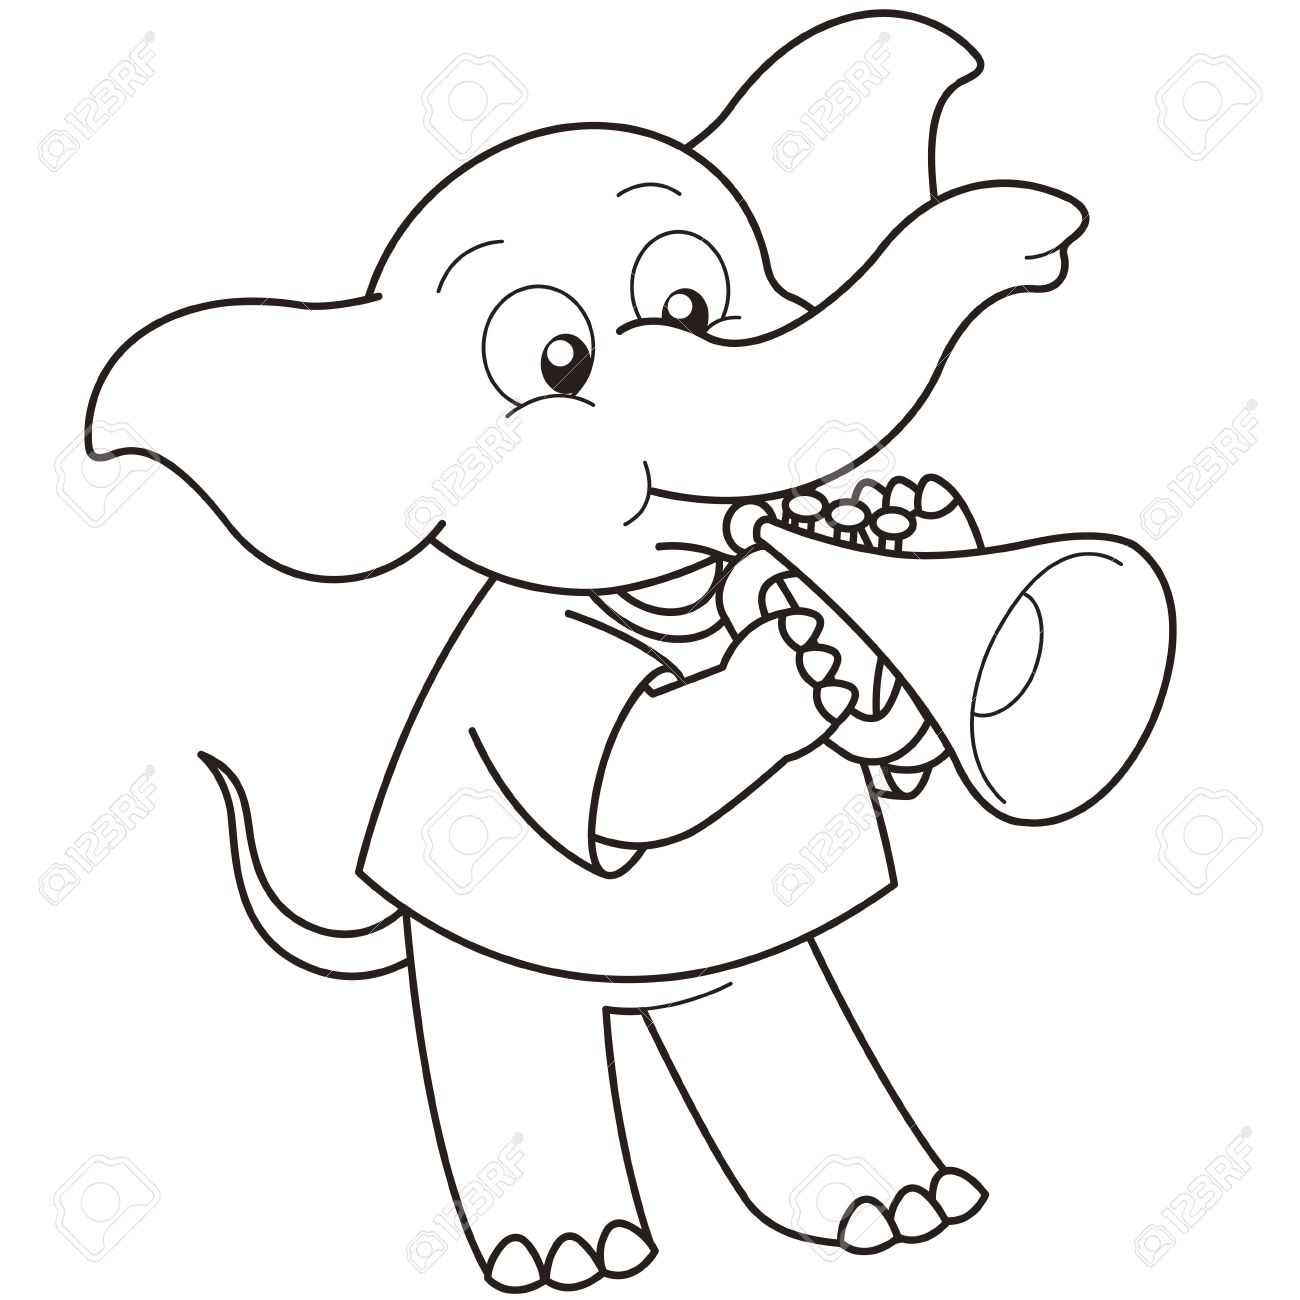 1300x1300 Cartoon Elephant Playing A Trumpet Black And White Royalty Free